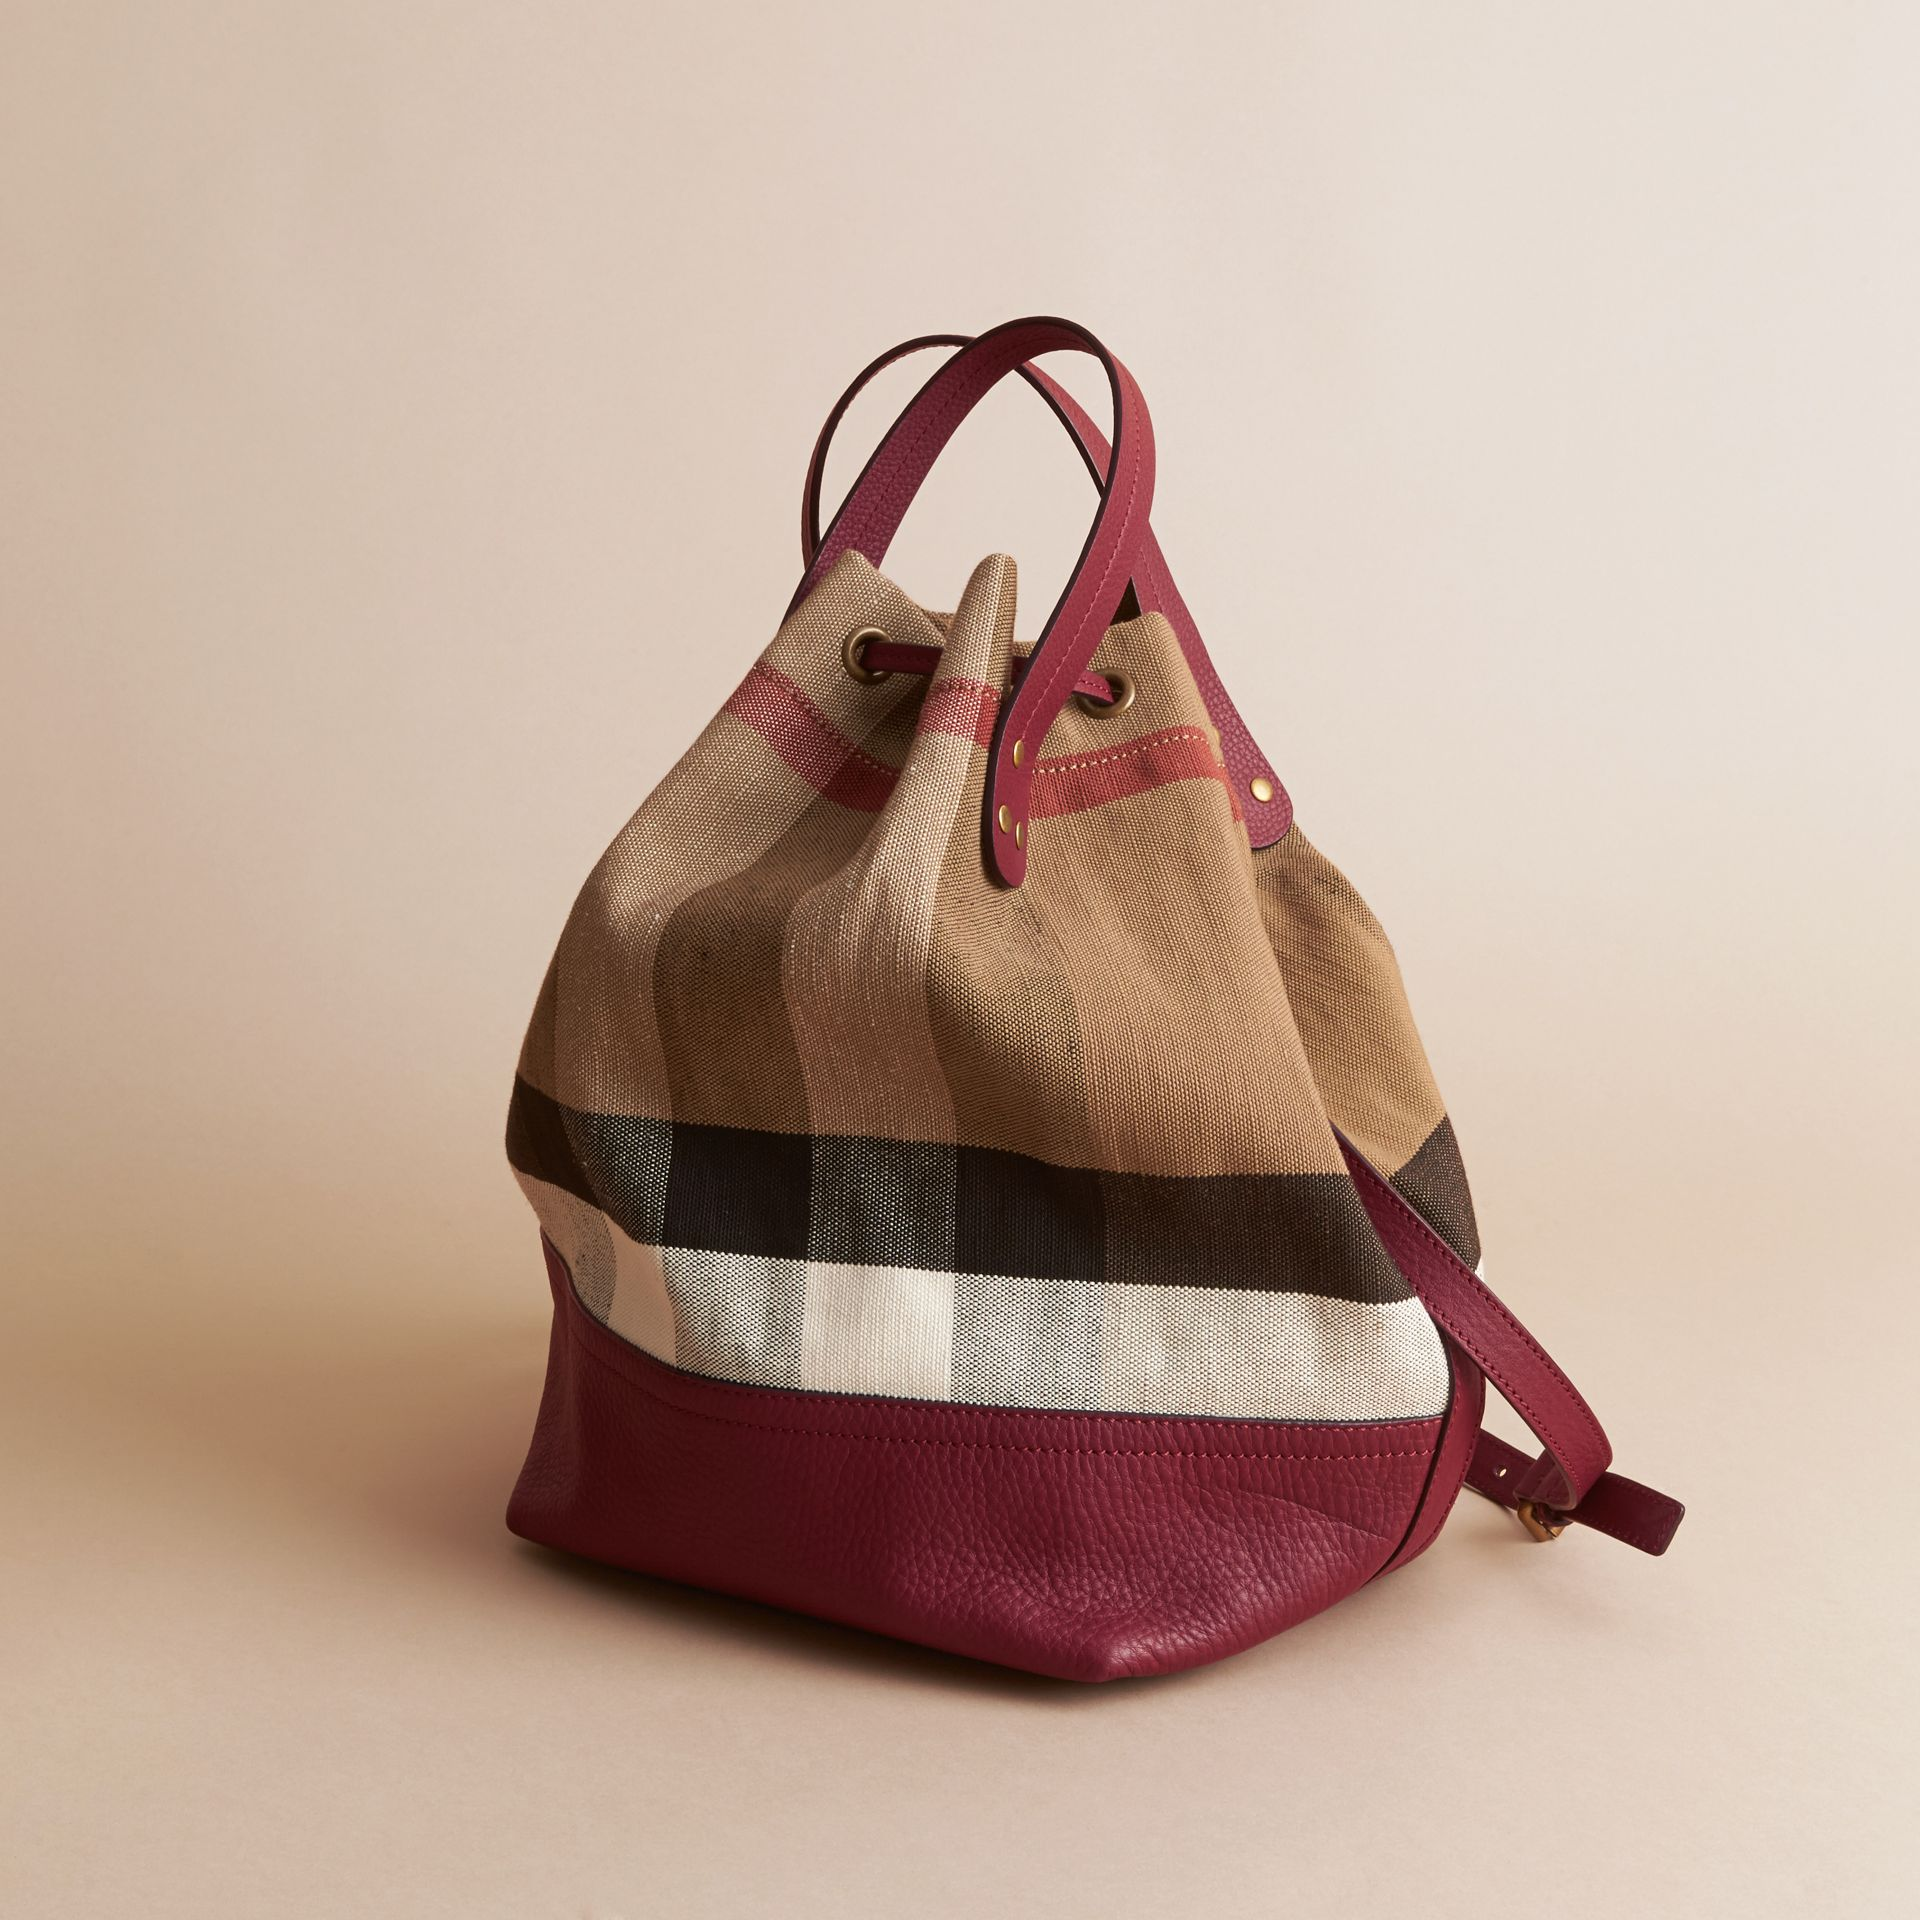 Medium Canvas Check and Leather Bucket Bag in Burgundy Red - Women | Burberry Hong Kong - gallery image 5